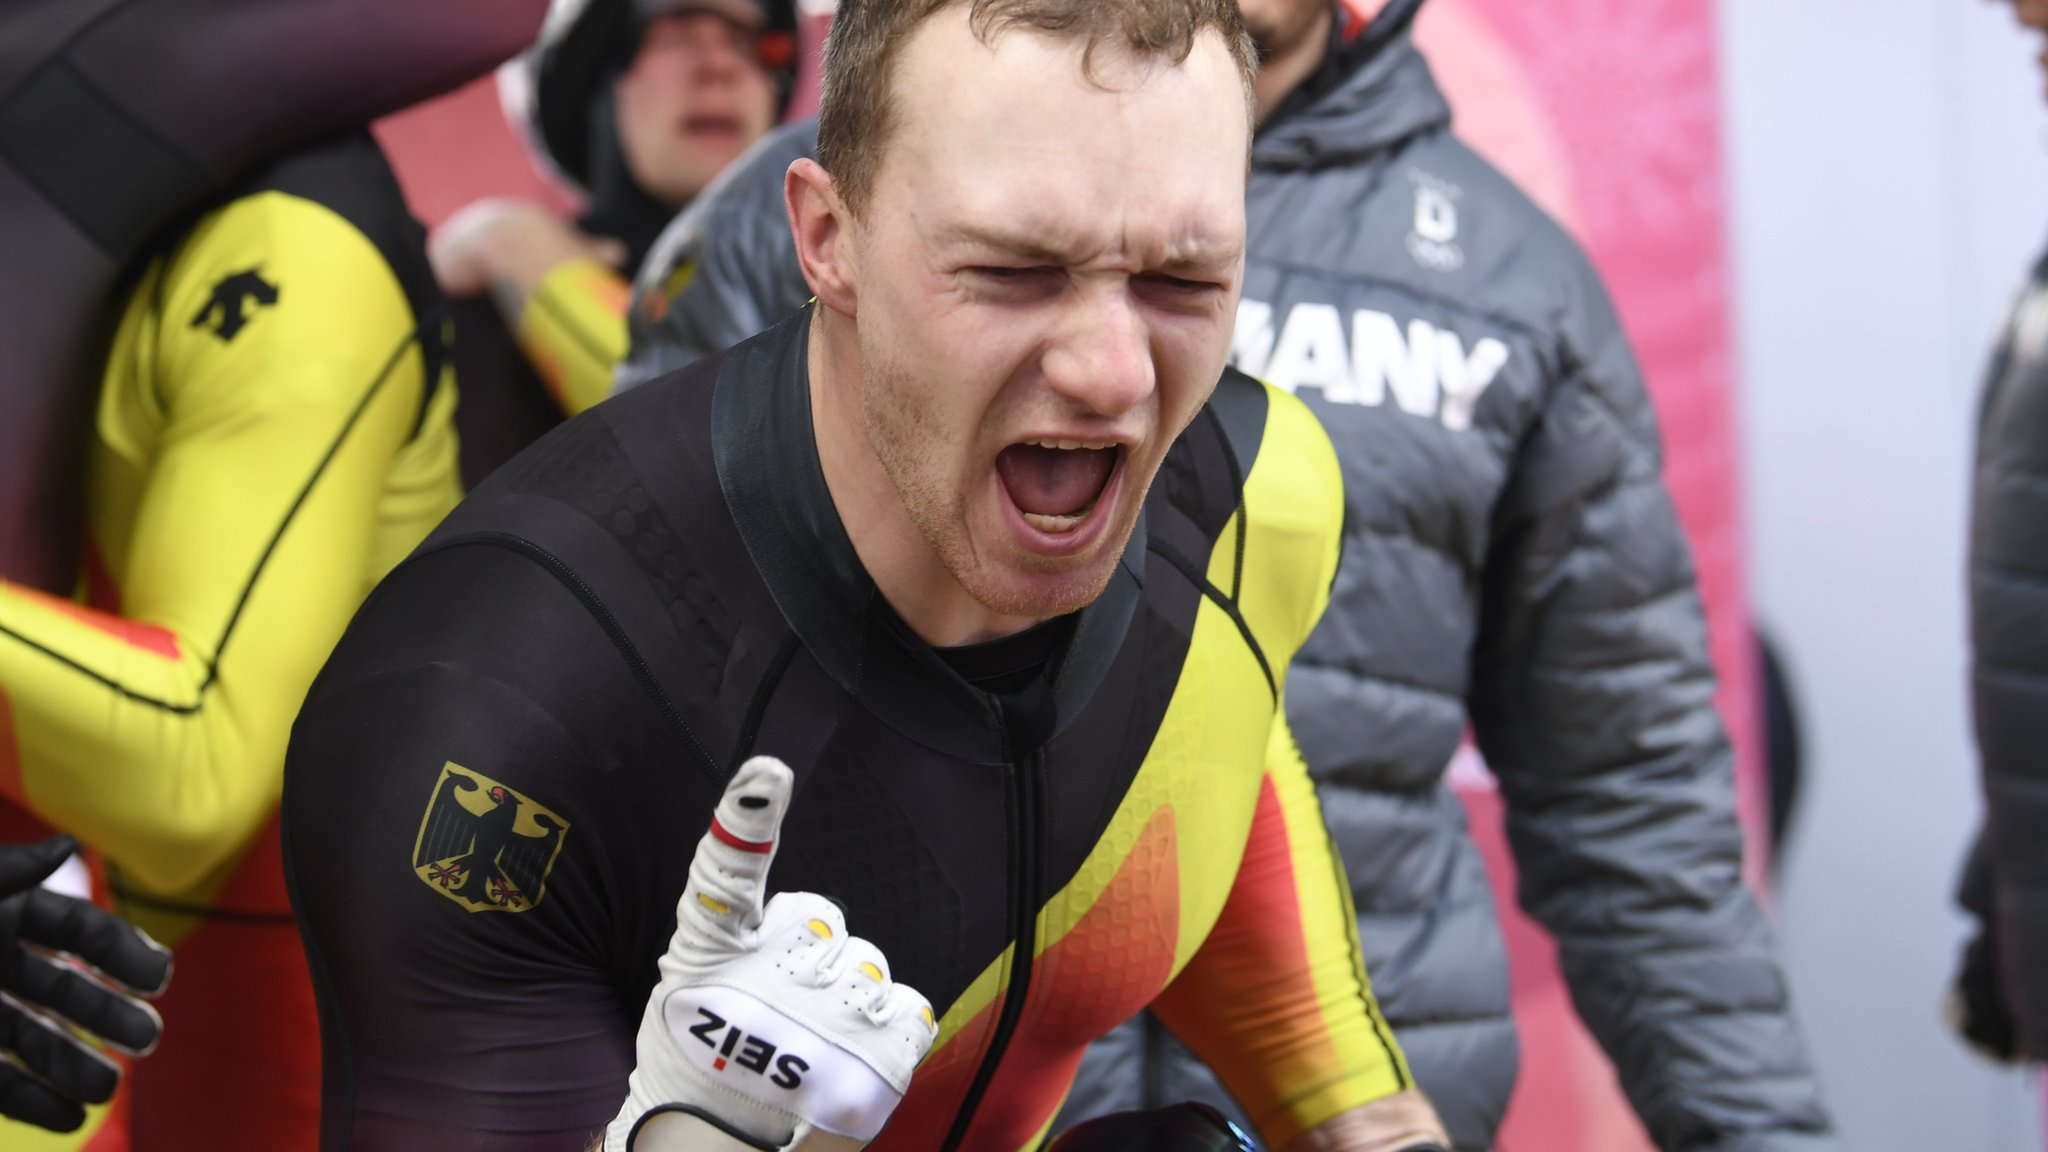 Friedrichs Germany win four-man bobsleigh as GB disappoint